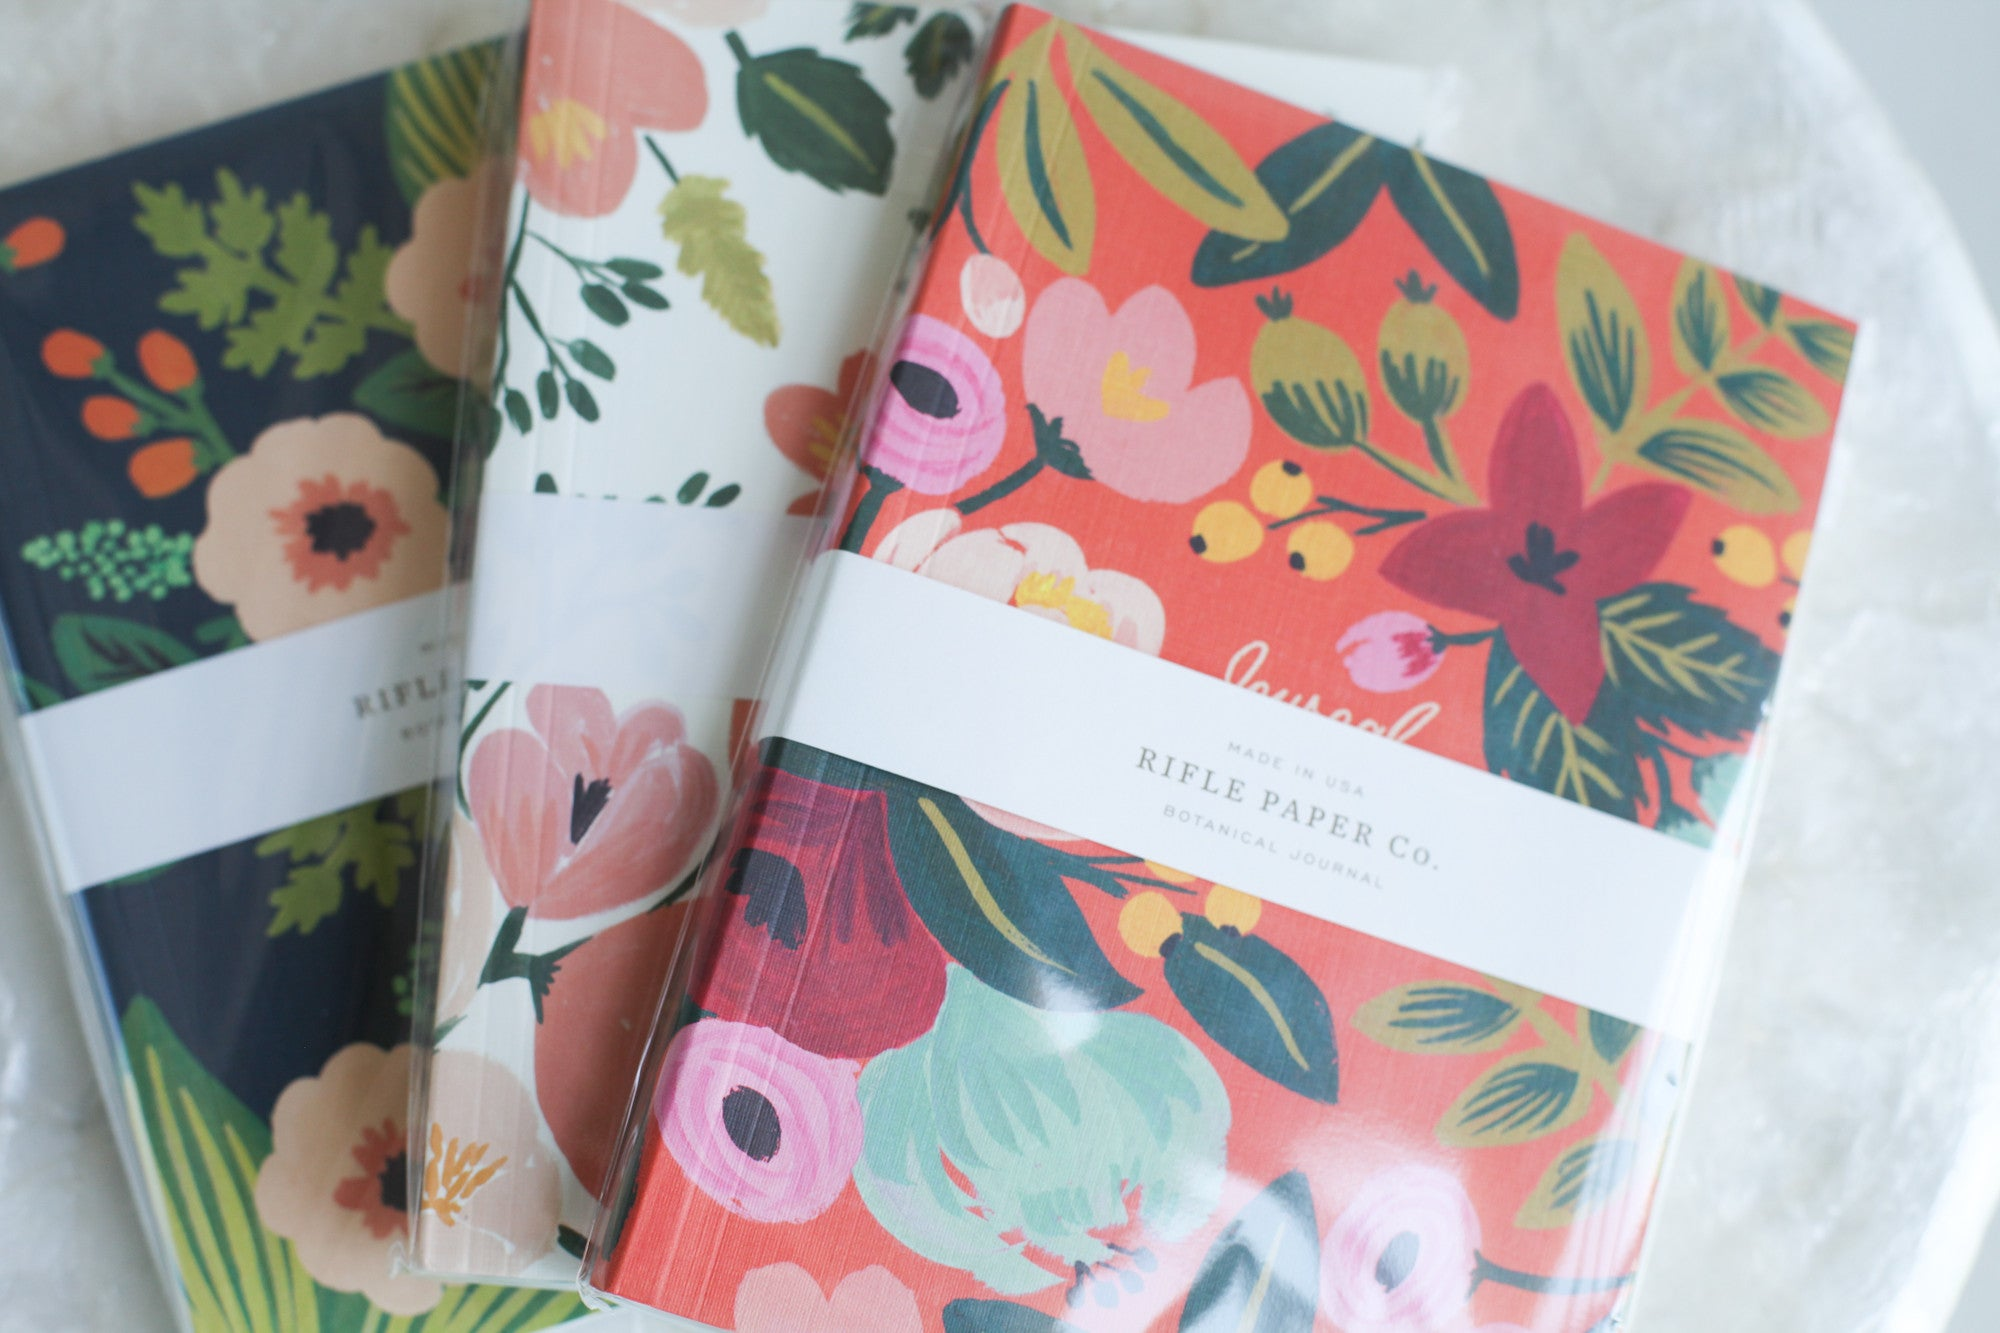 Rifle Paper Co. Jardin Everyday Journal